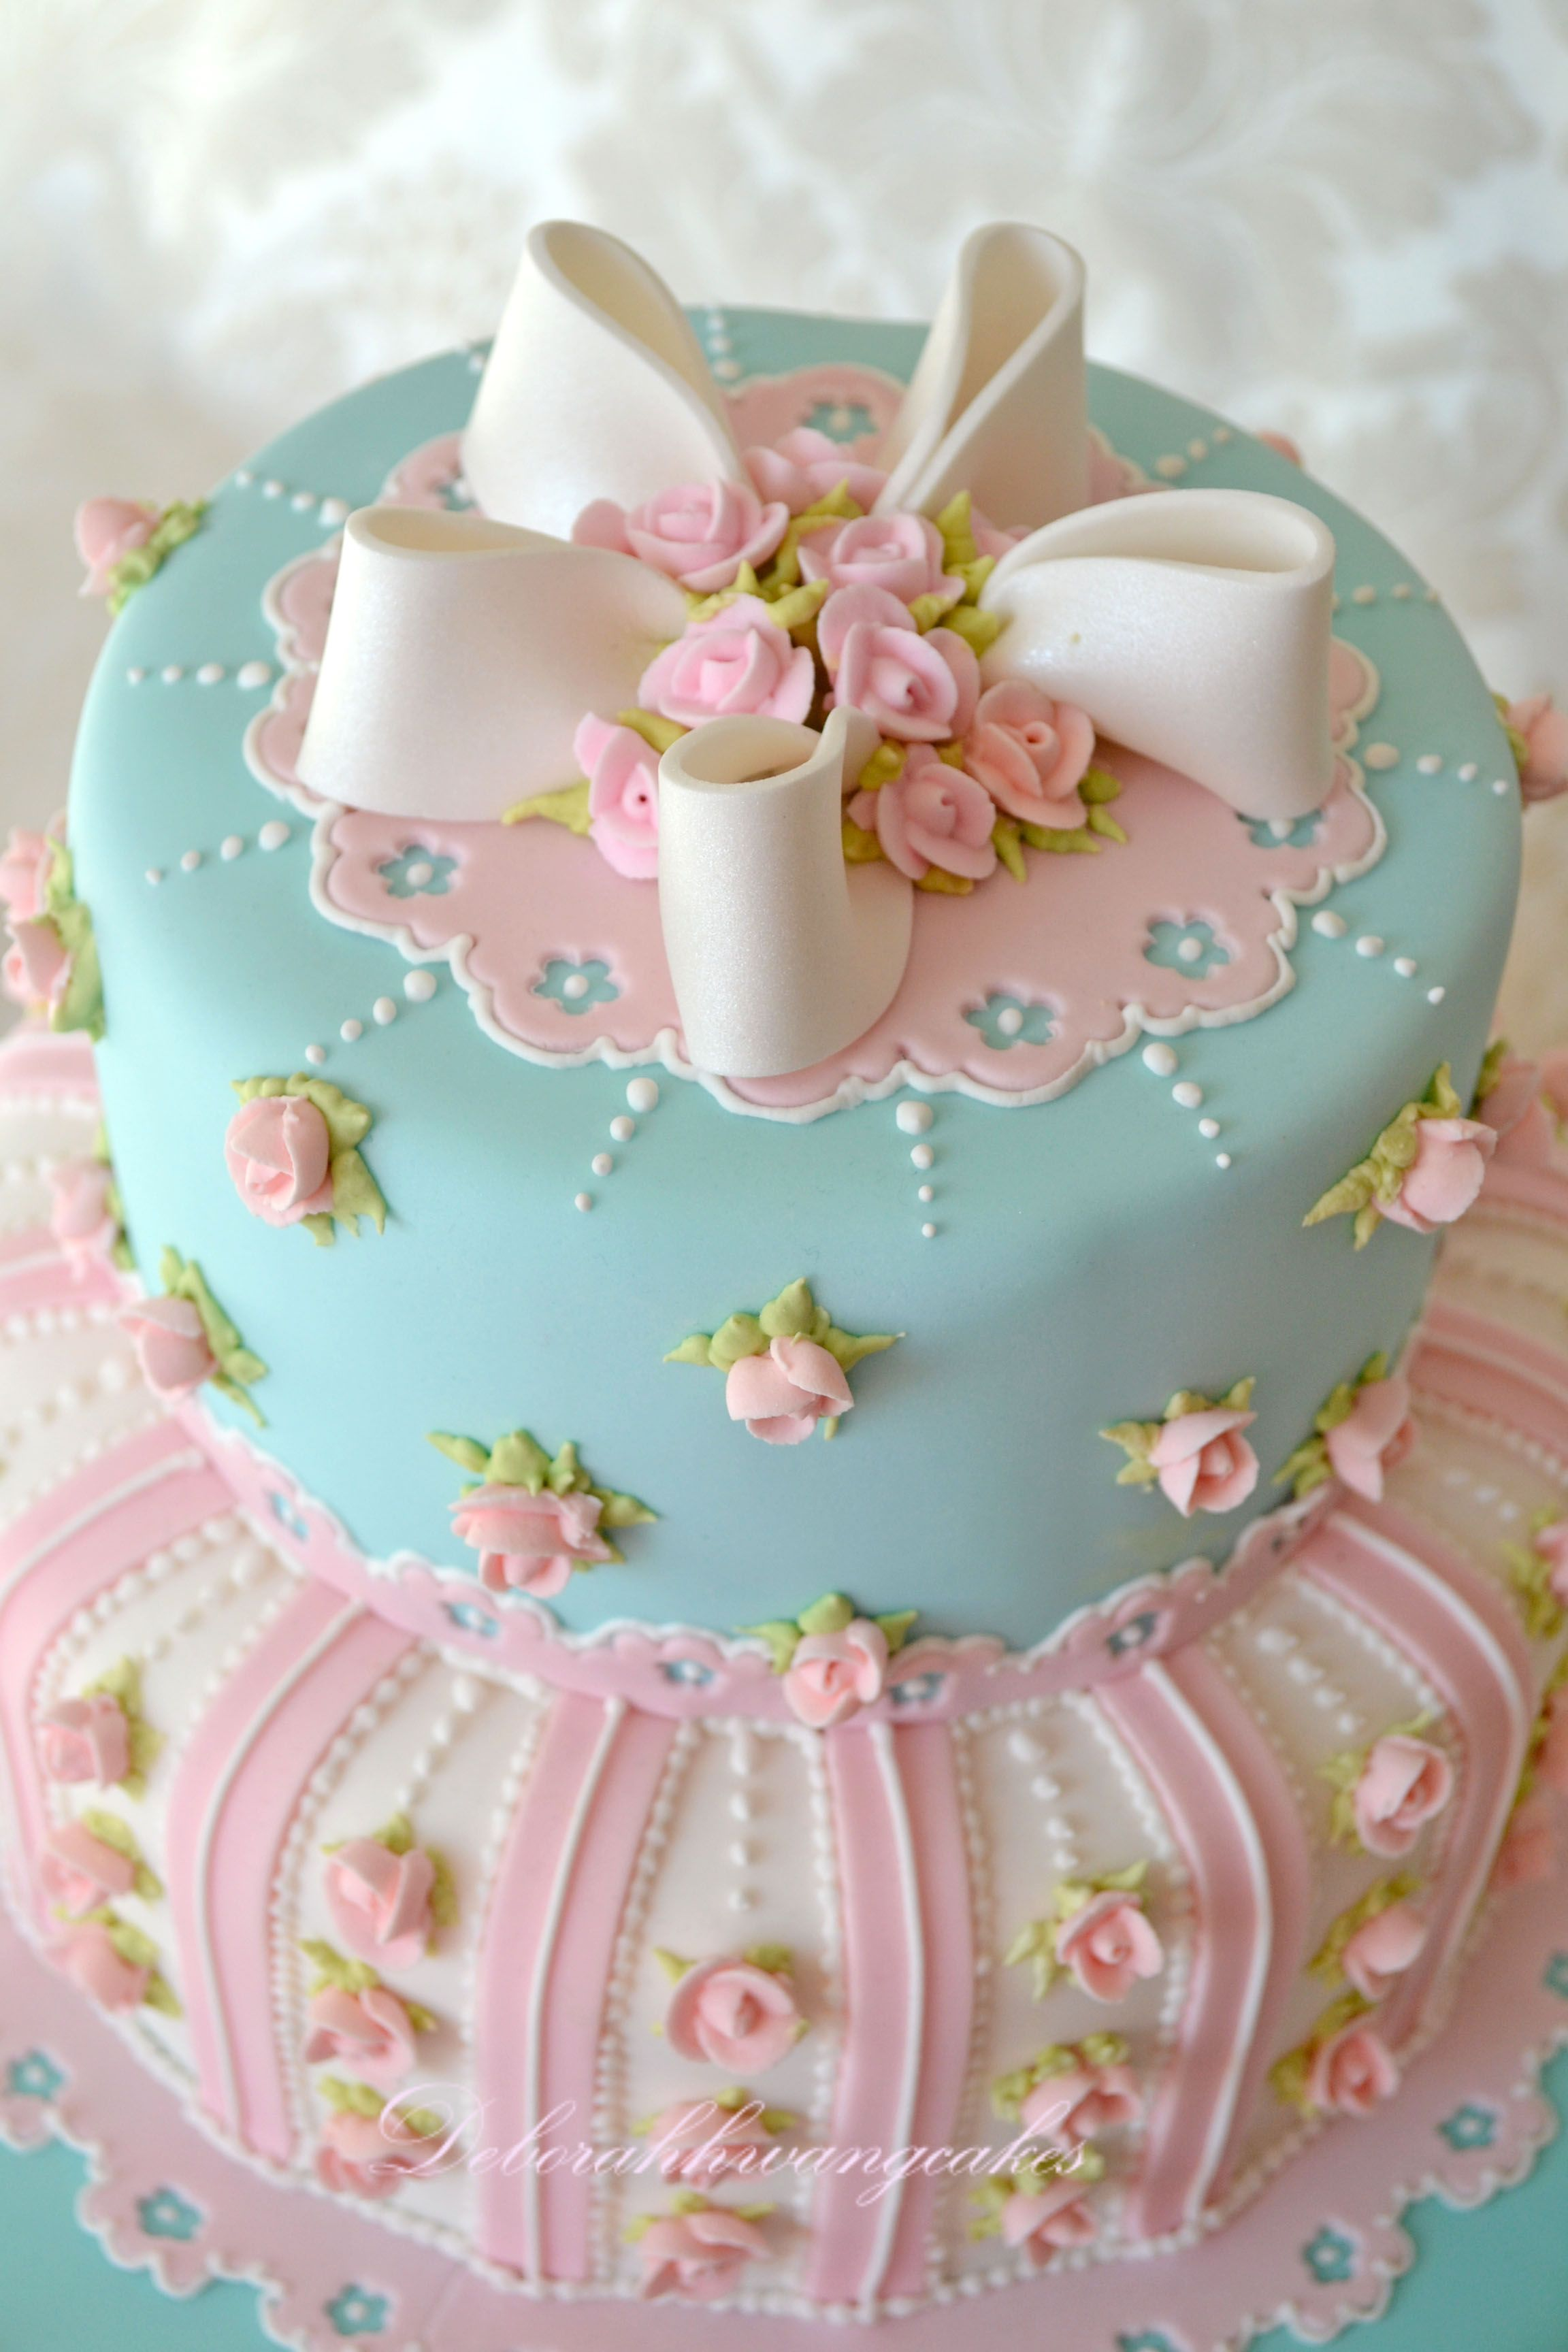 This cake for a girls birthday or tea party or if its a girl it this cake for a girls birthday or tea party or if its a girl it matches the pottery barn bedding i have picked out izmirmasajfo